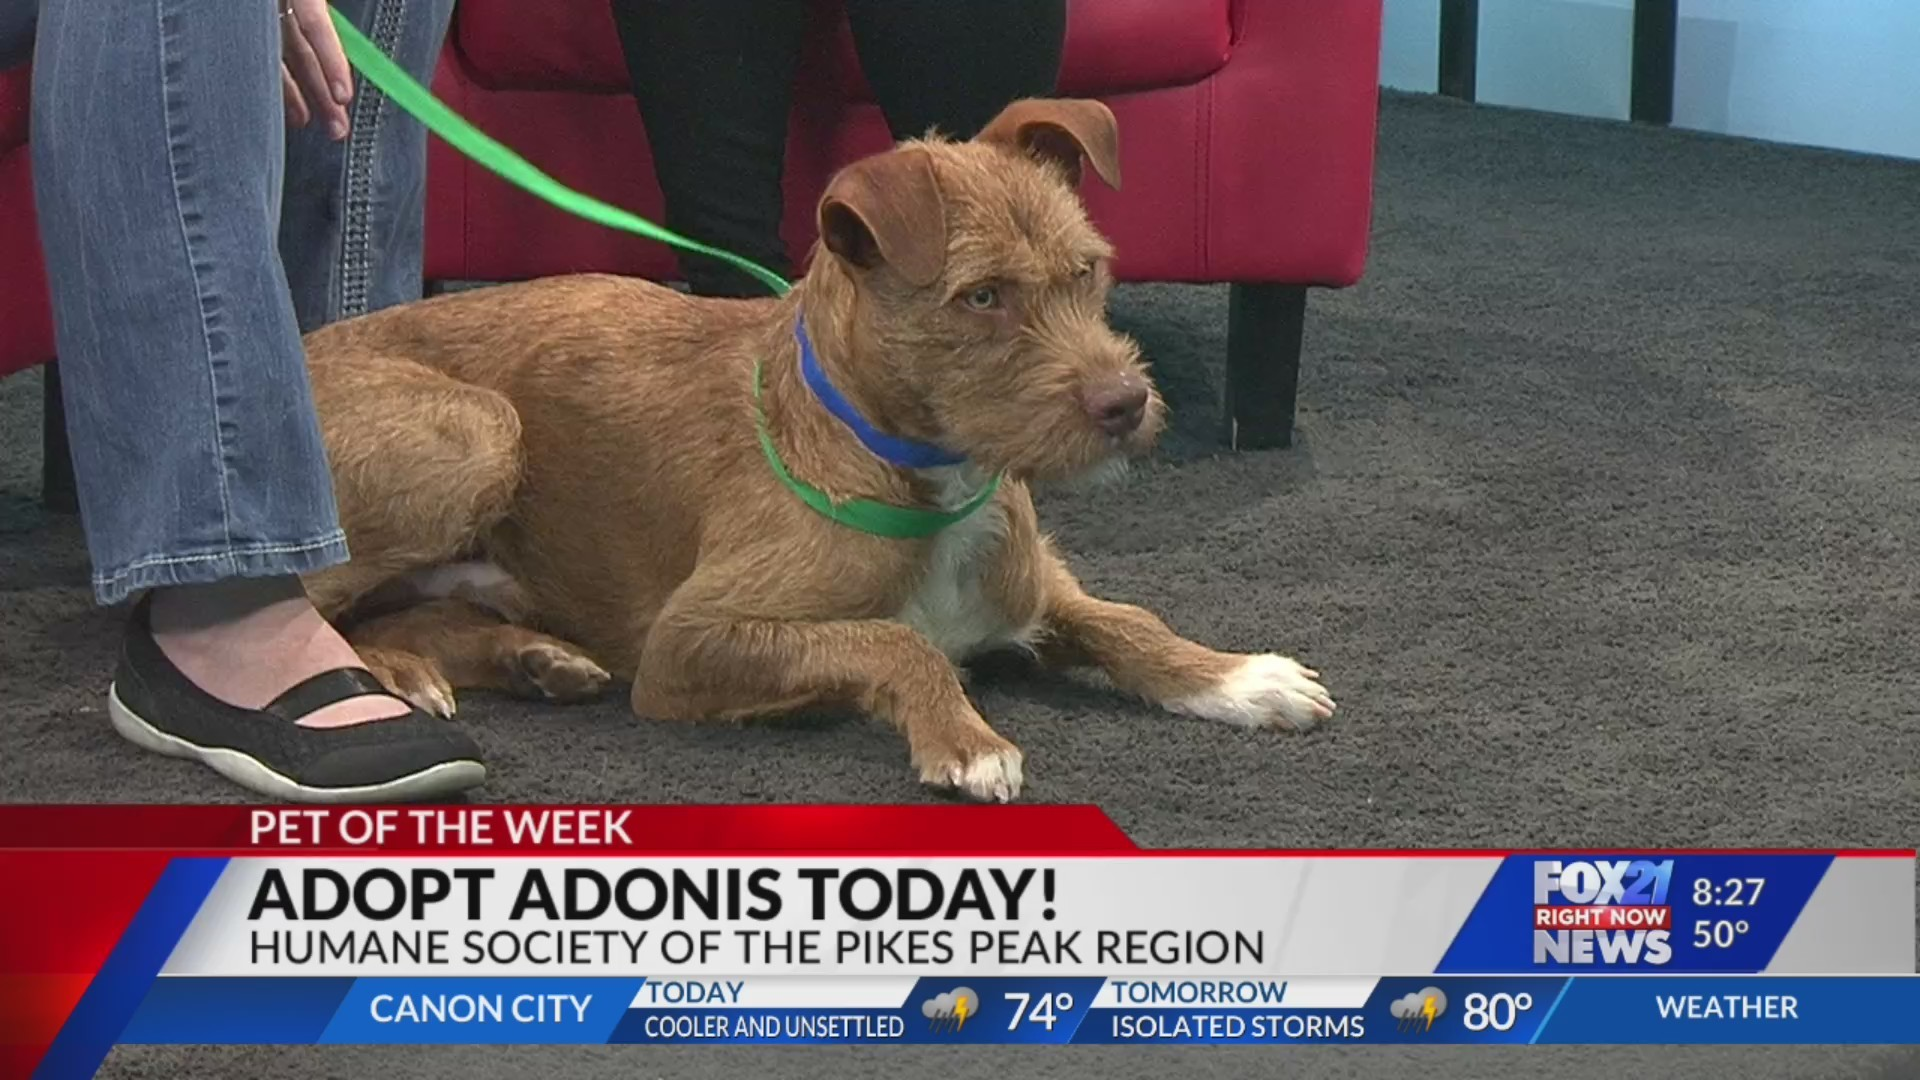 June 5 Pet of the Week: Adonis